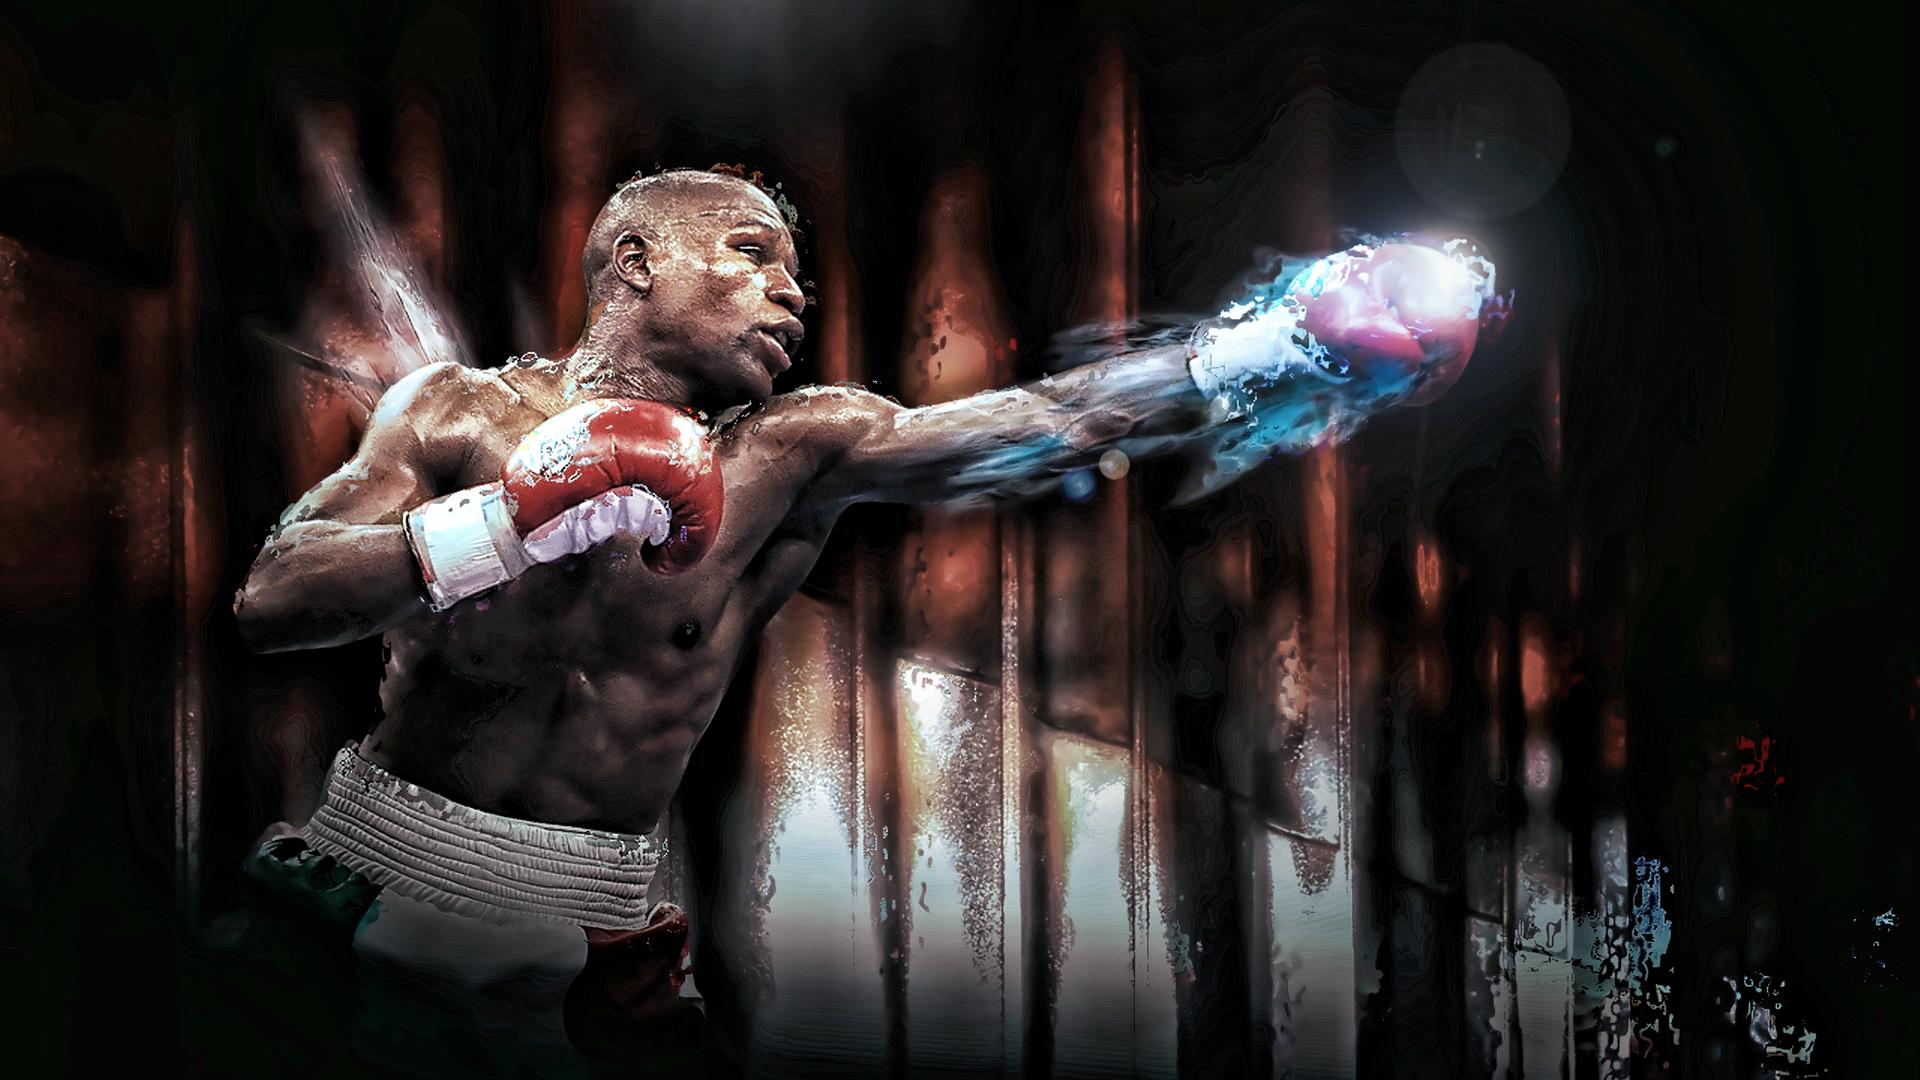 Sport Wallpaper Boxing: Boxing Wallpapers High Quality